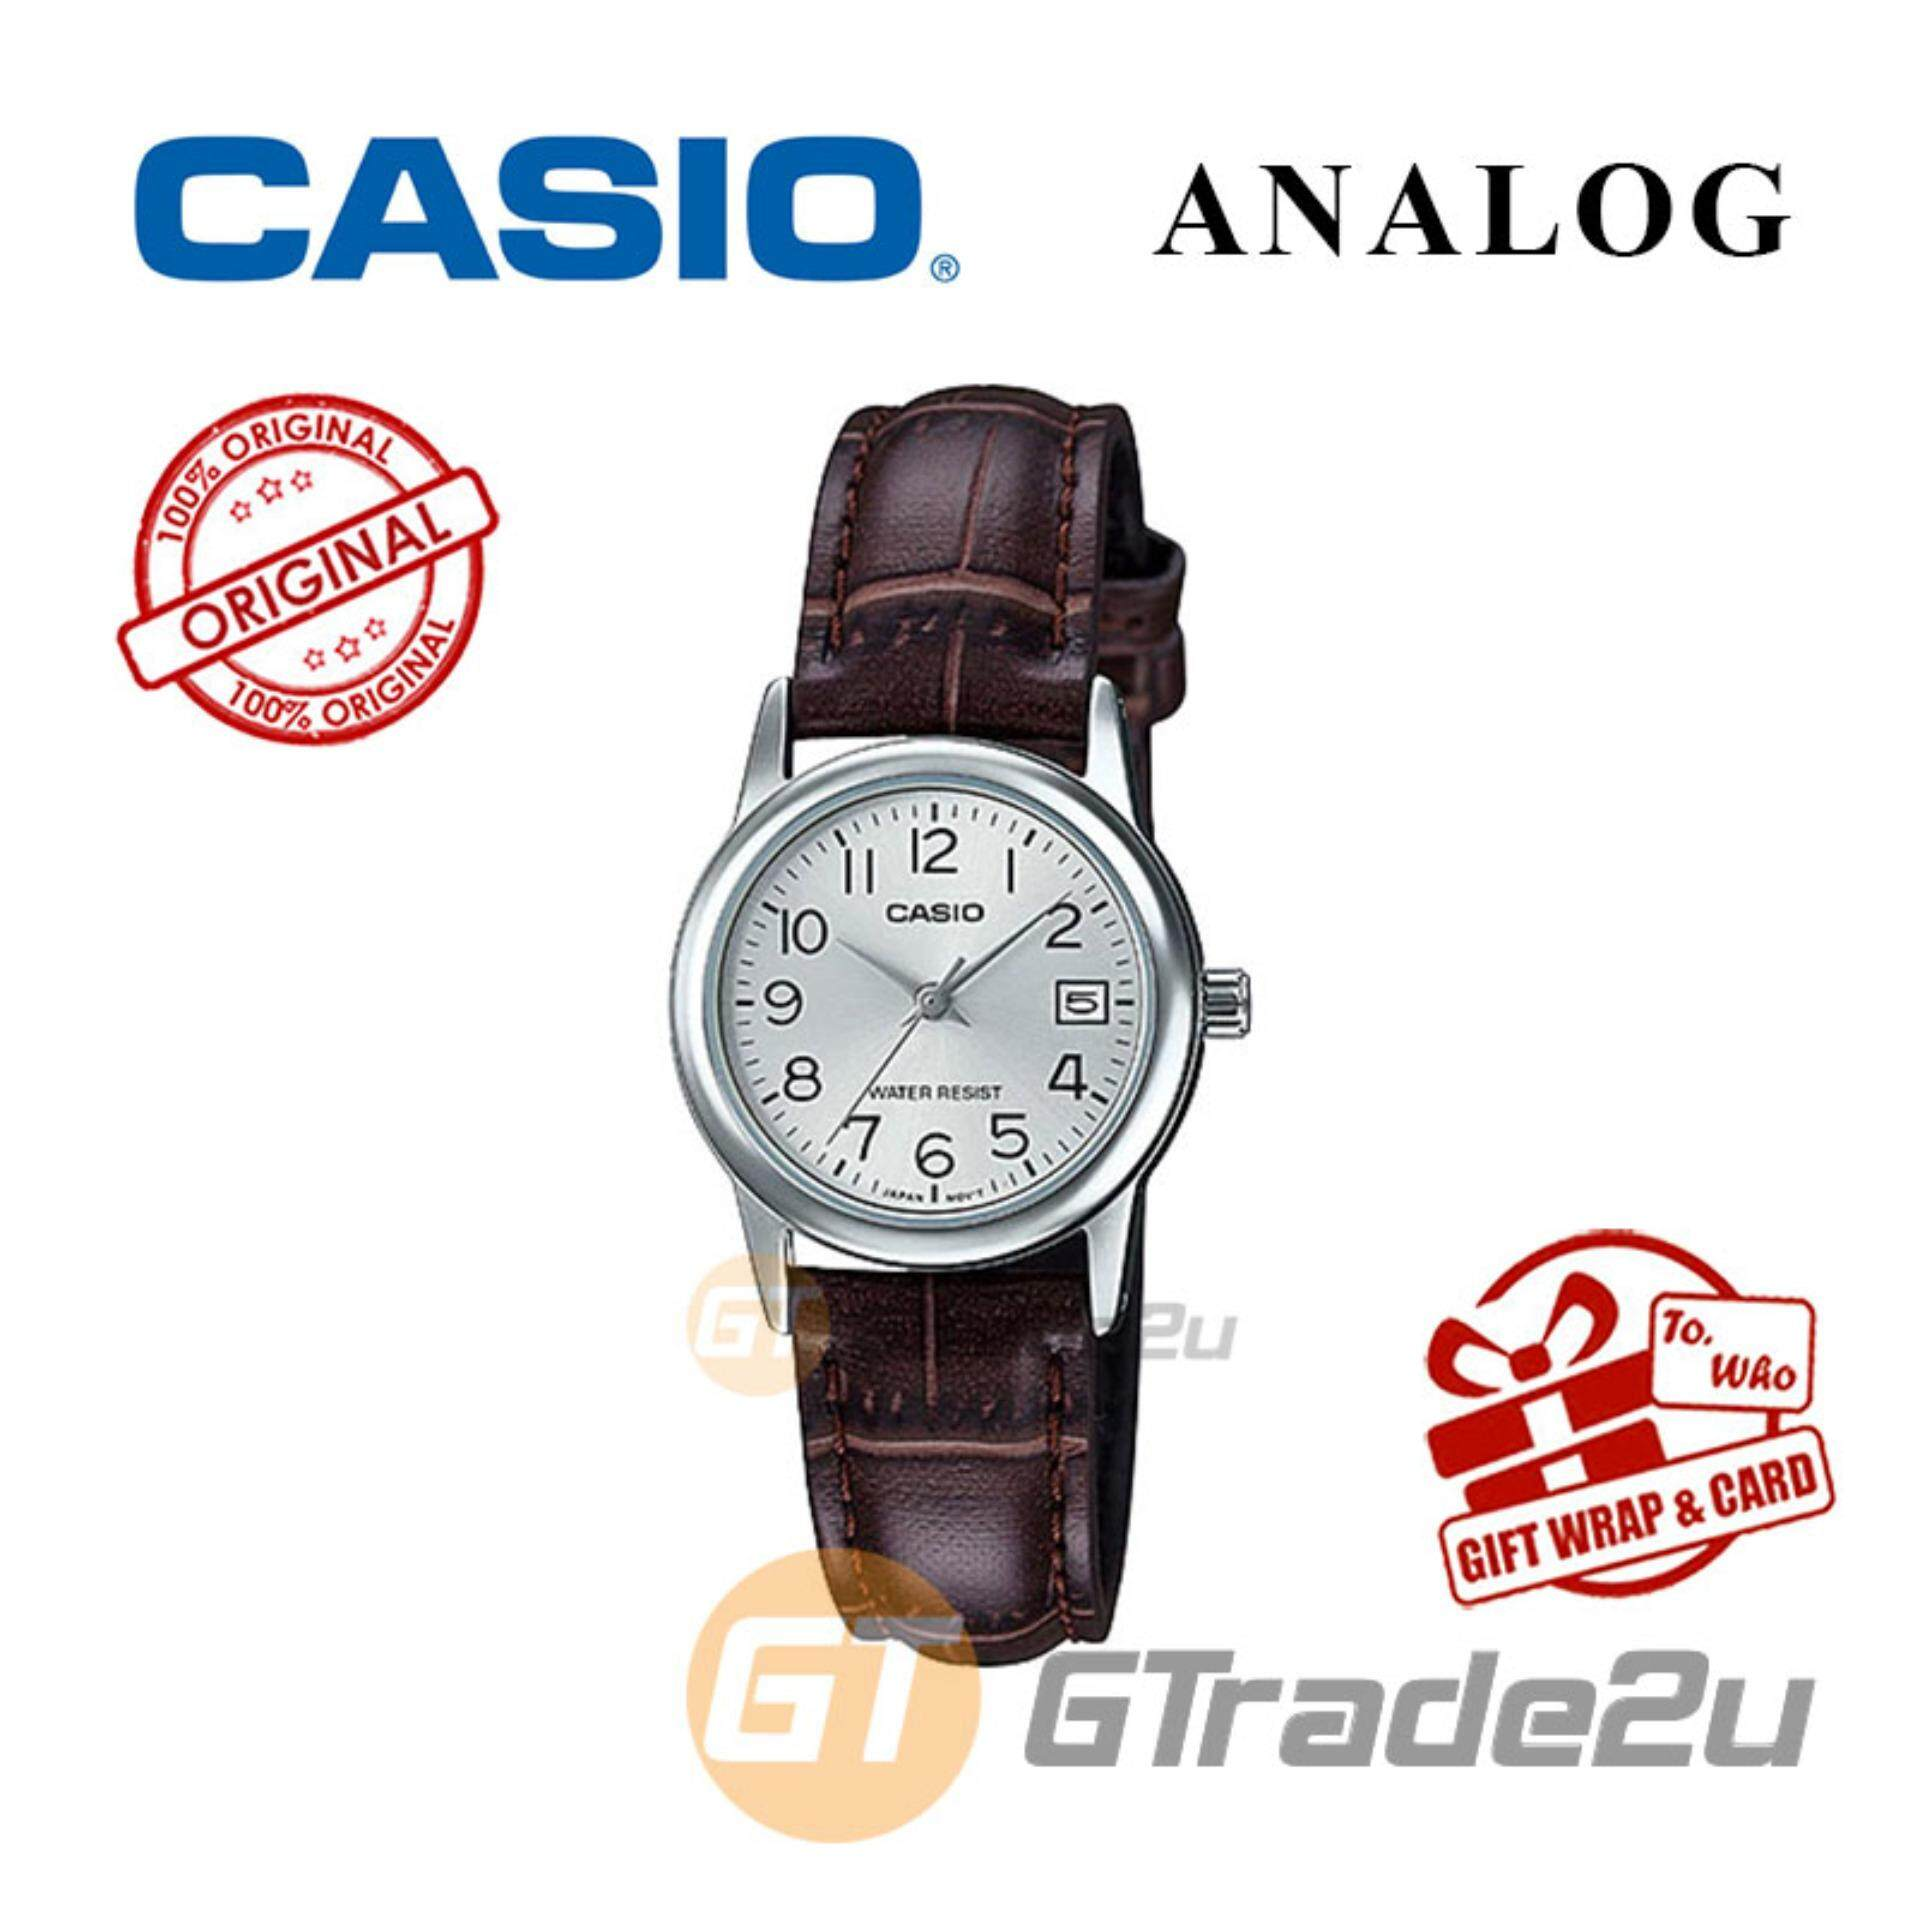 Casio Women s Casual Watches for the Best Prices in Malaysia 5c196a598e